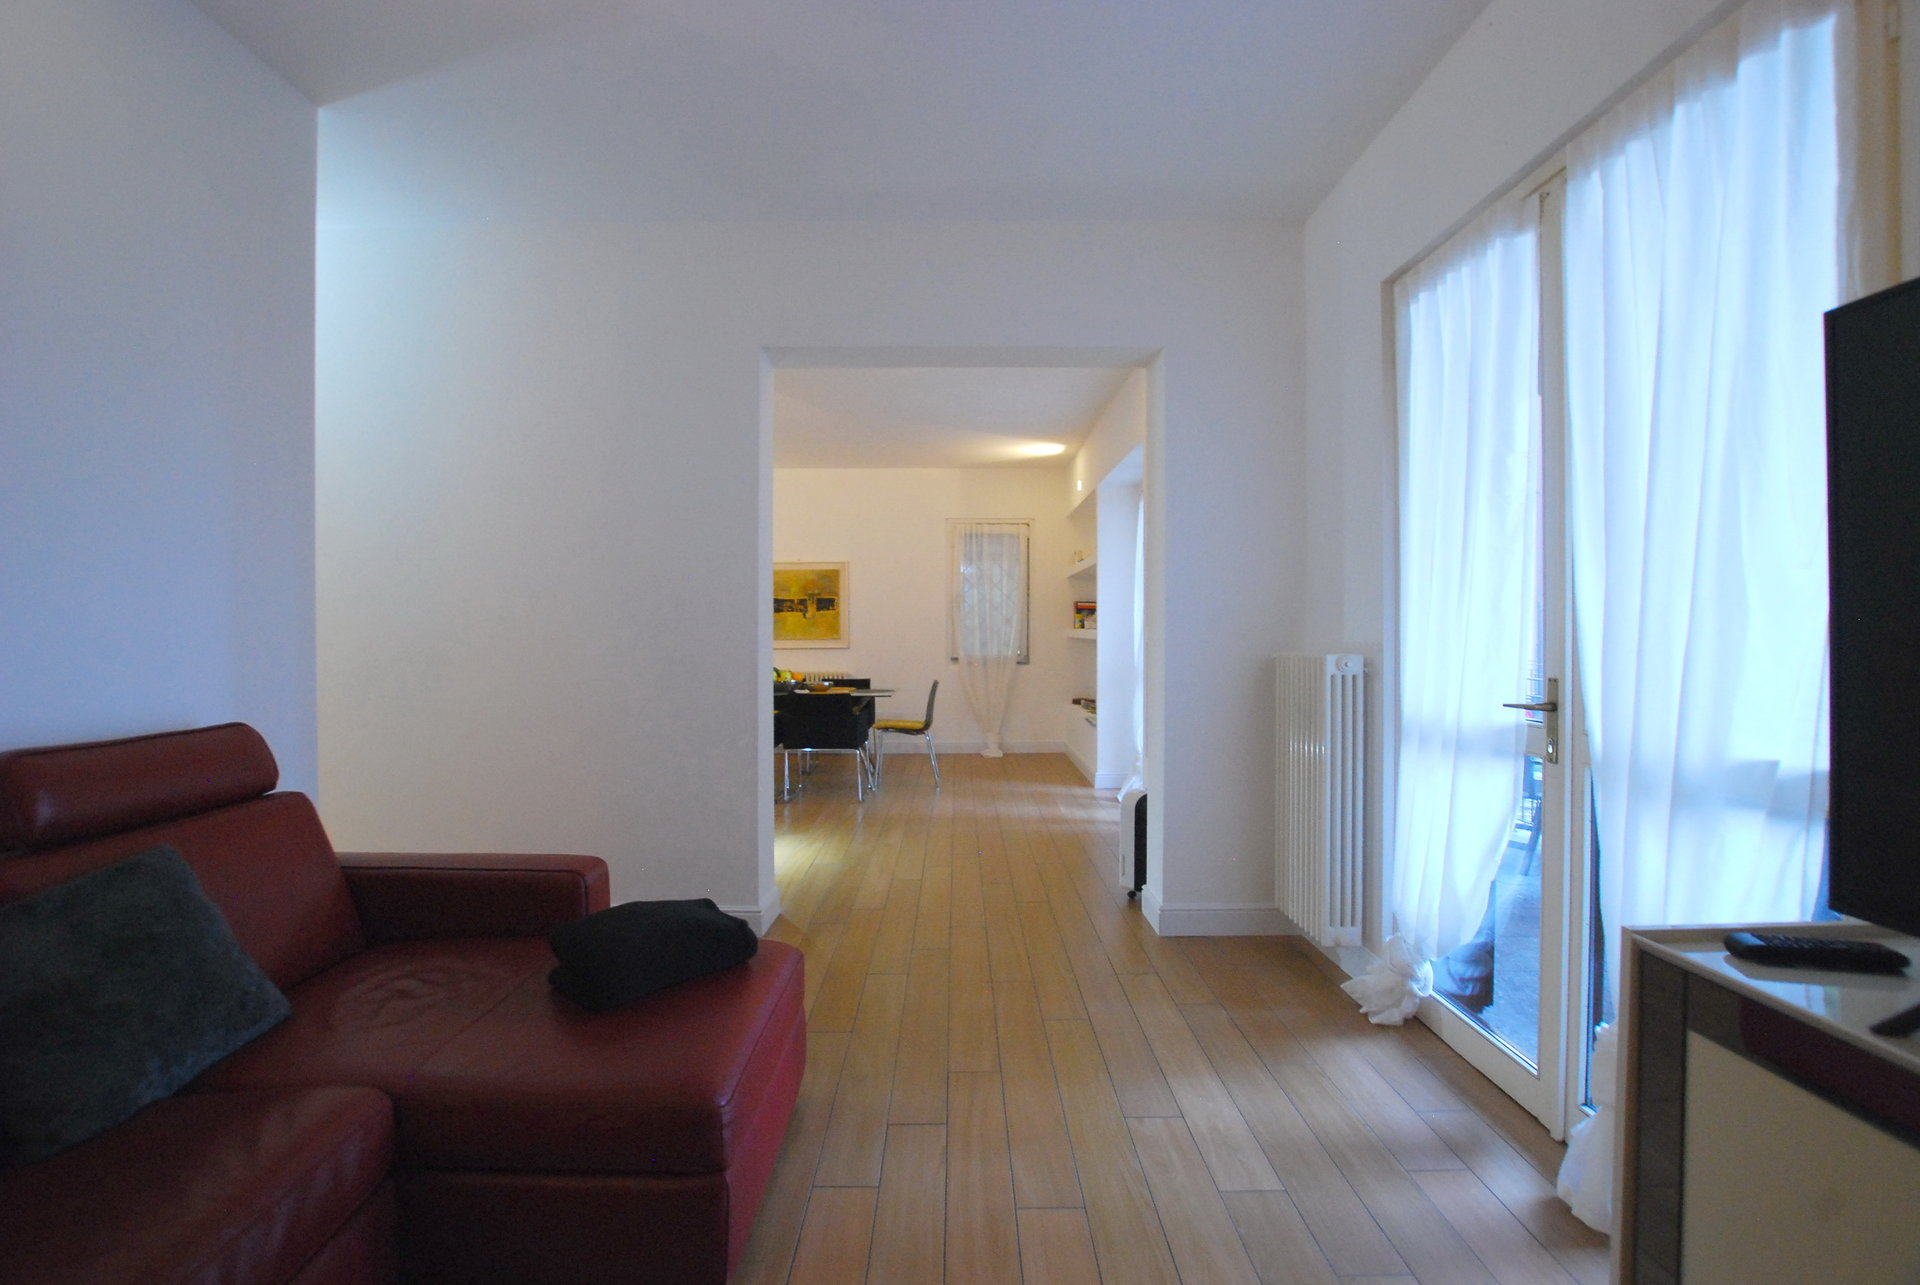 Furnished apartment for sale in Baveno